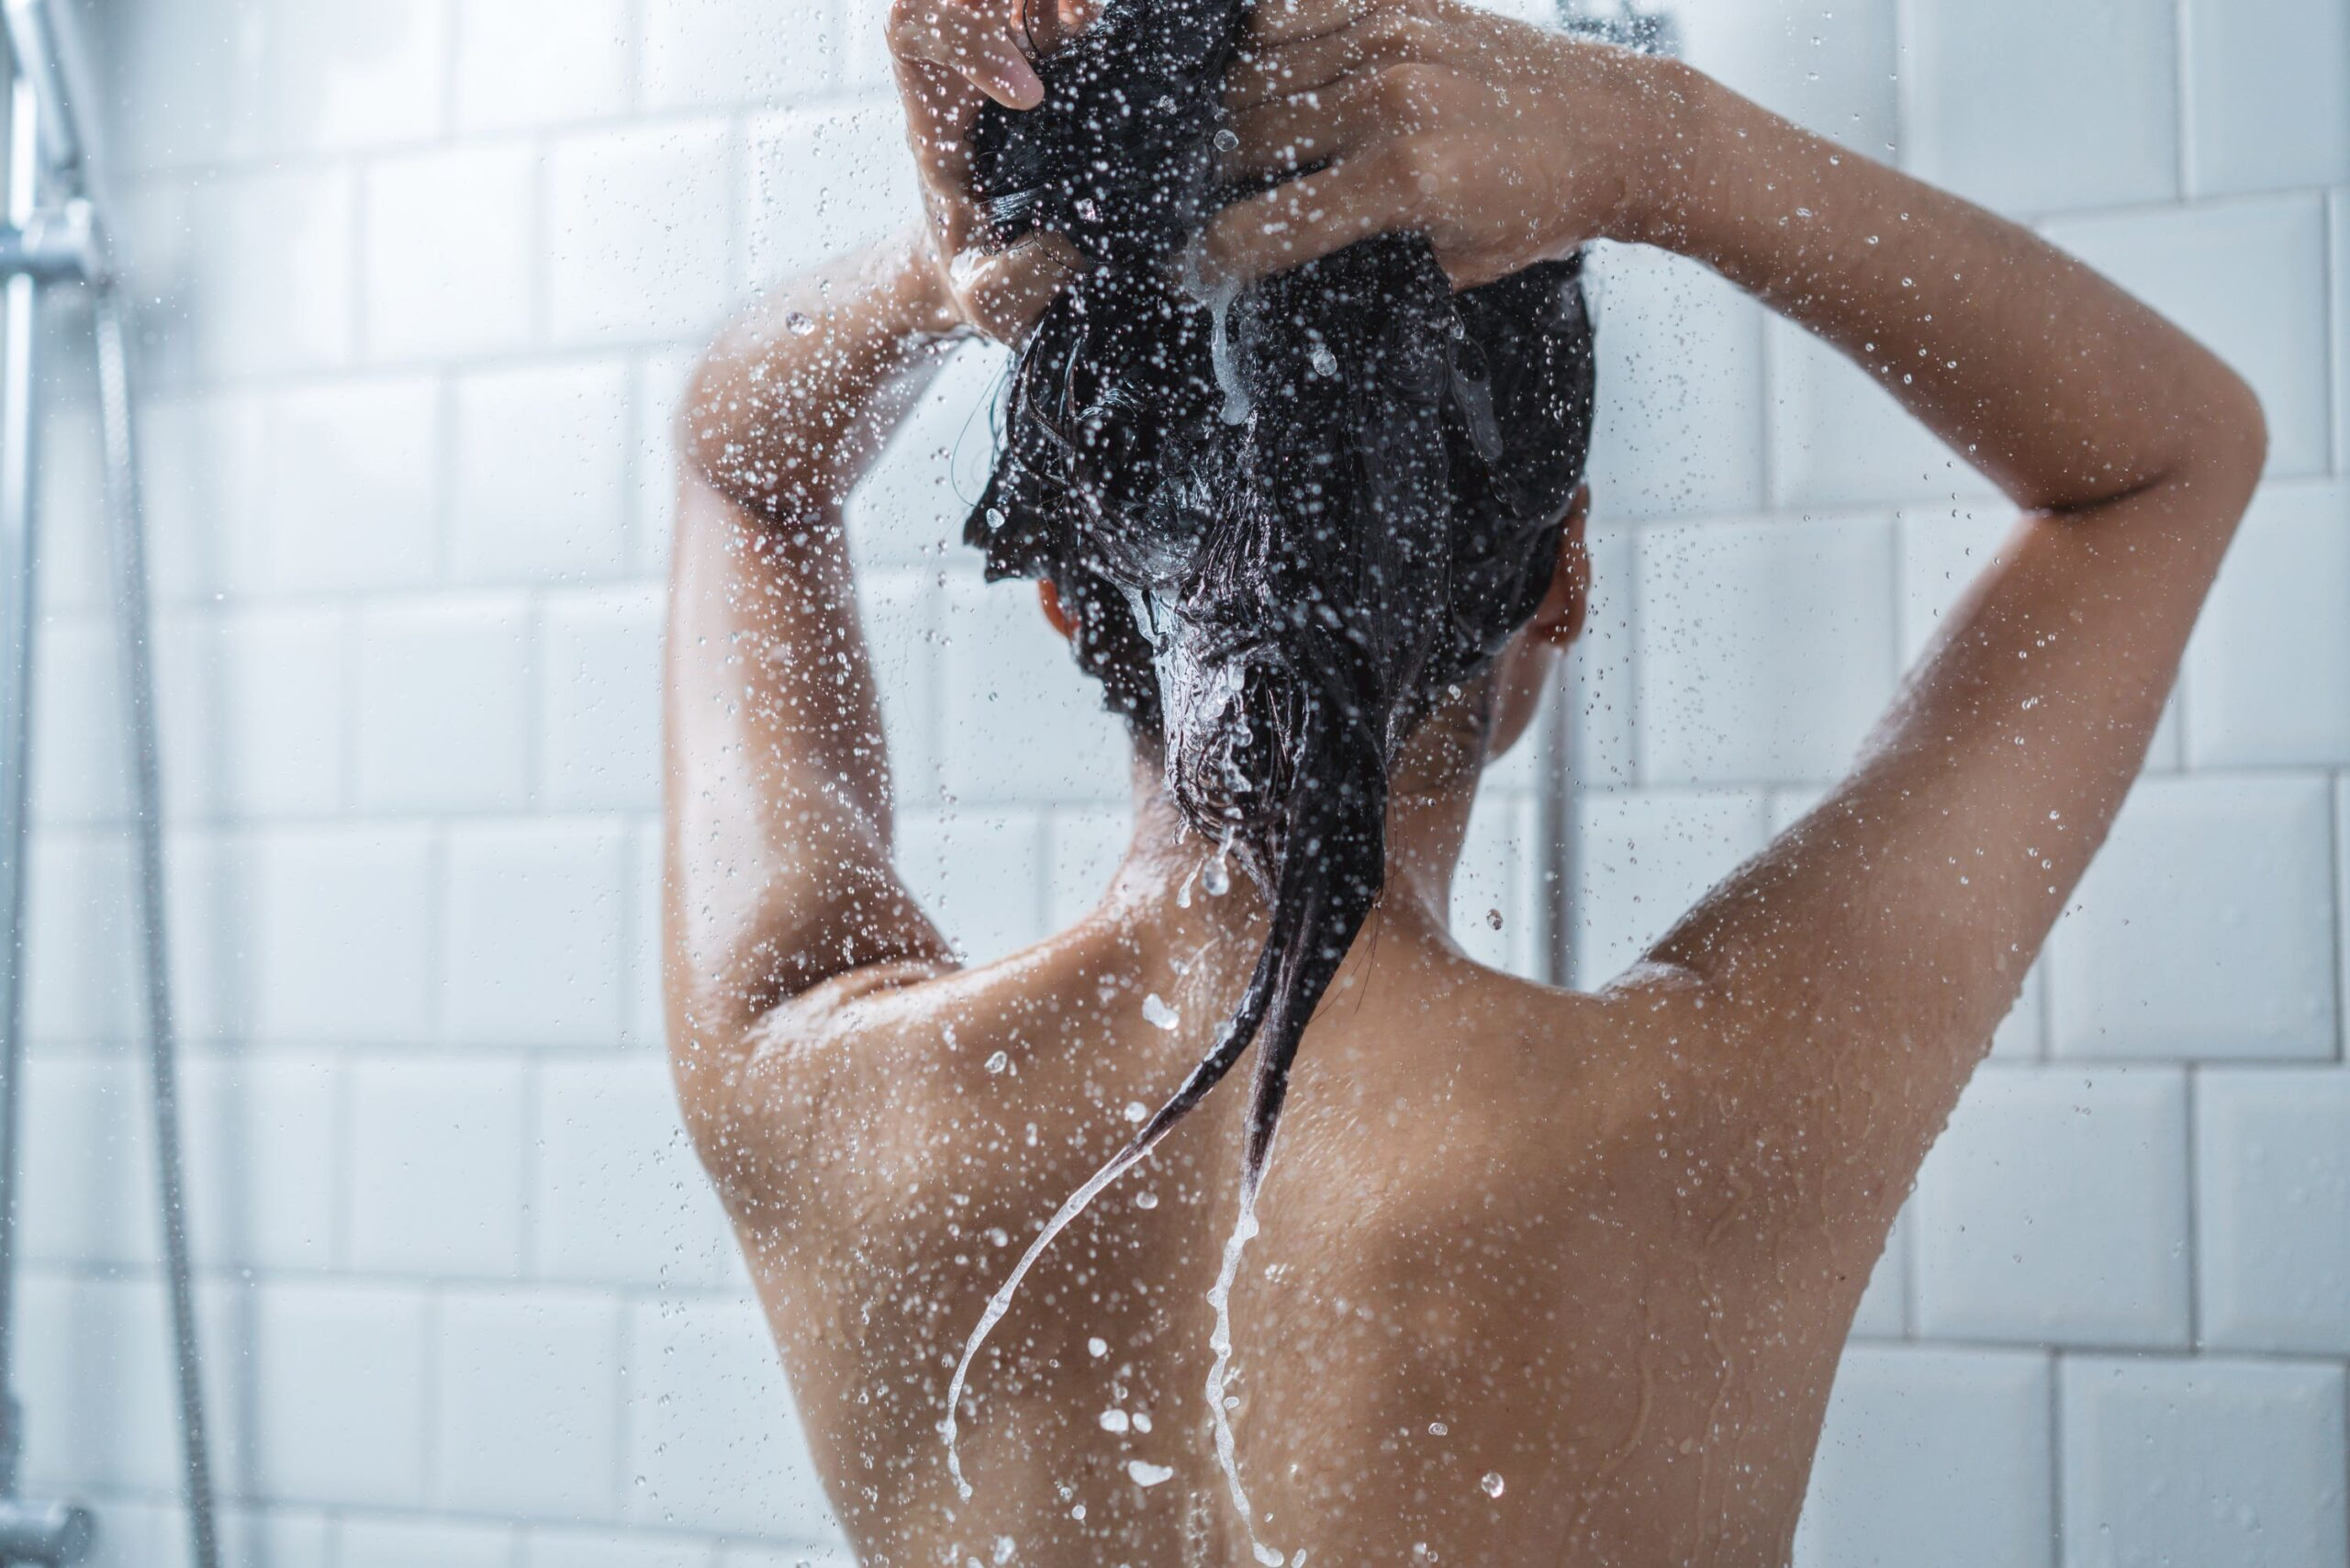 woman showers scaled